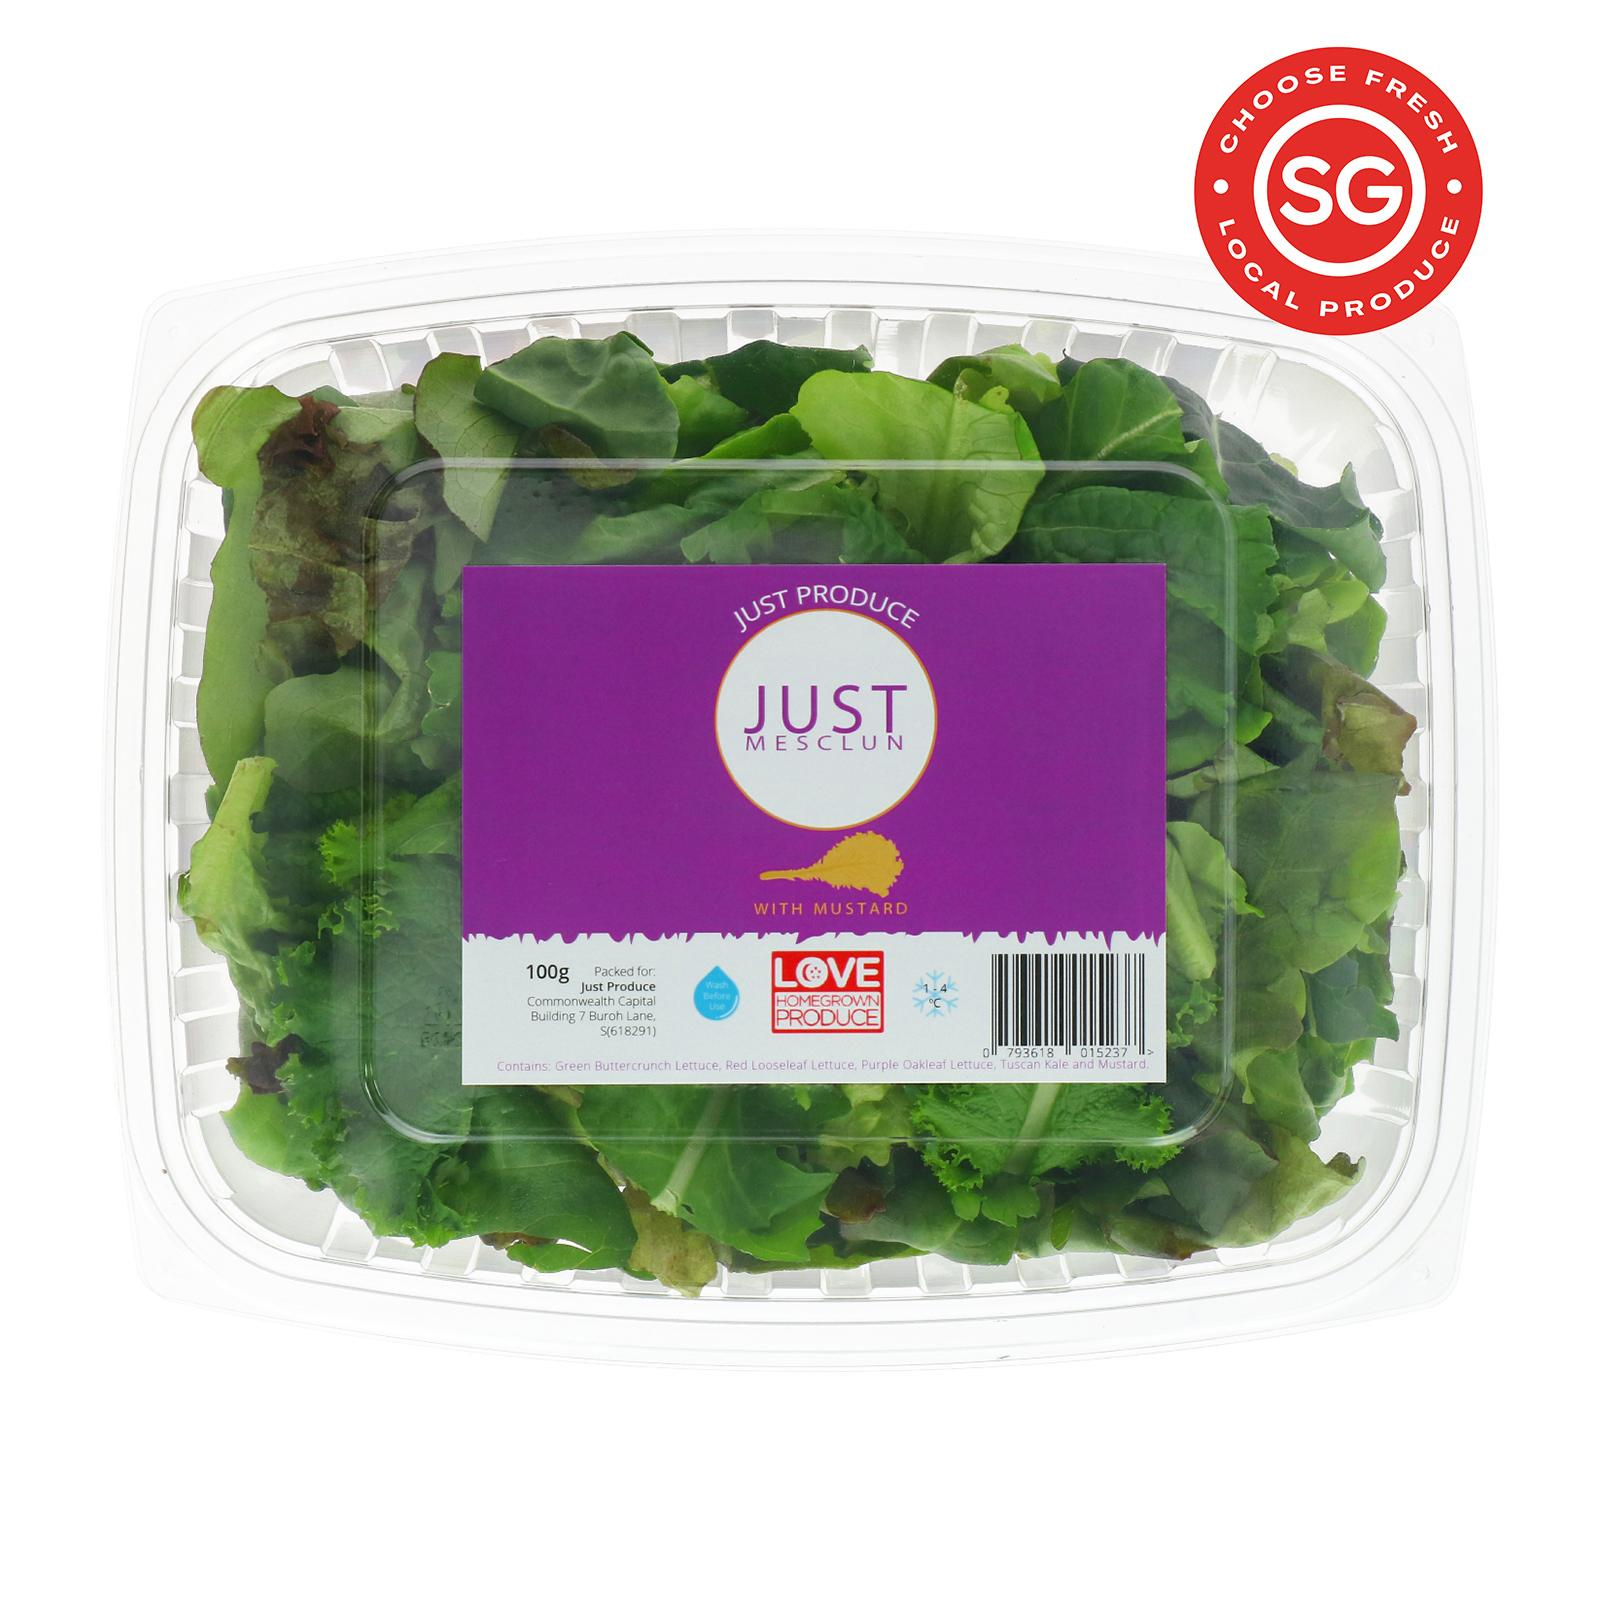 JUST PRODUCE Just Mesclun and Mustard